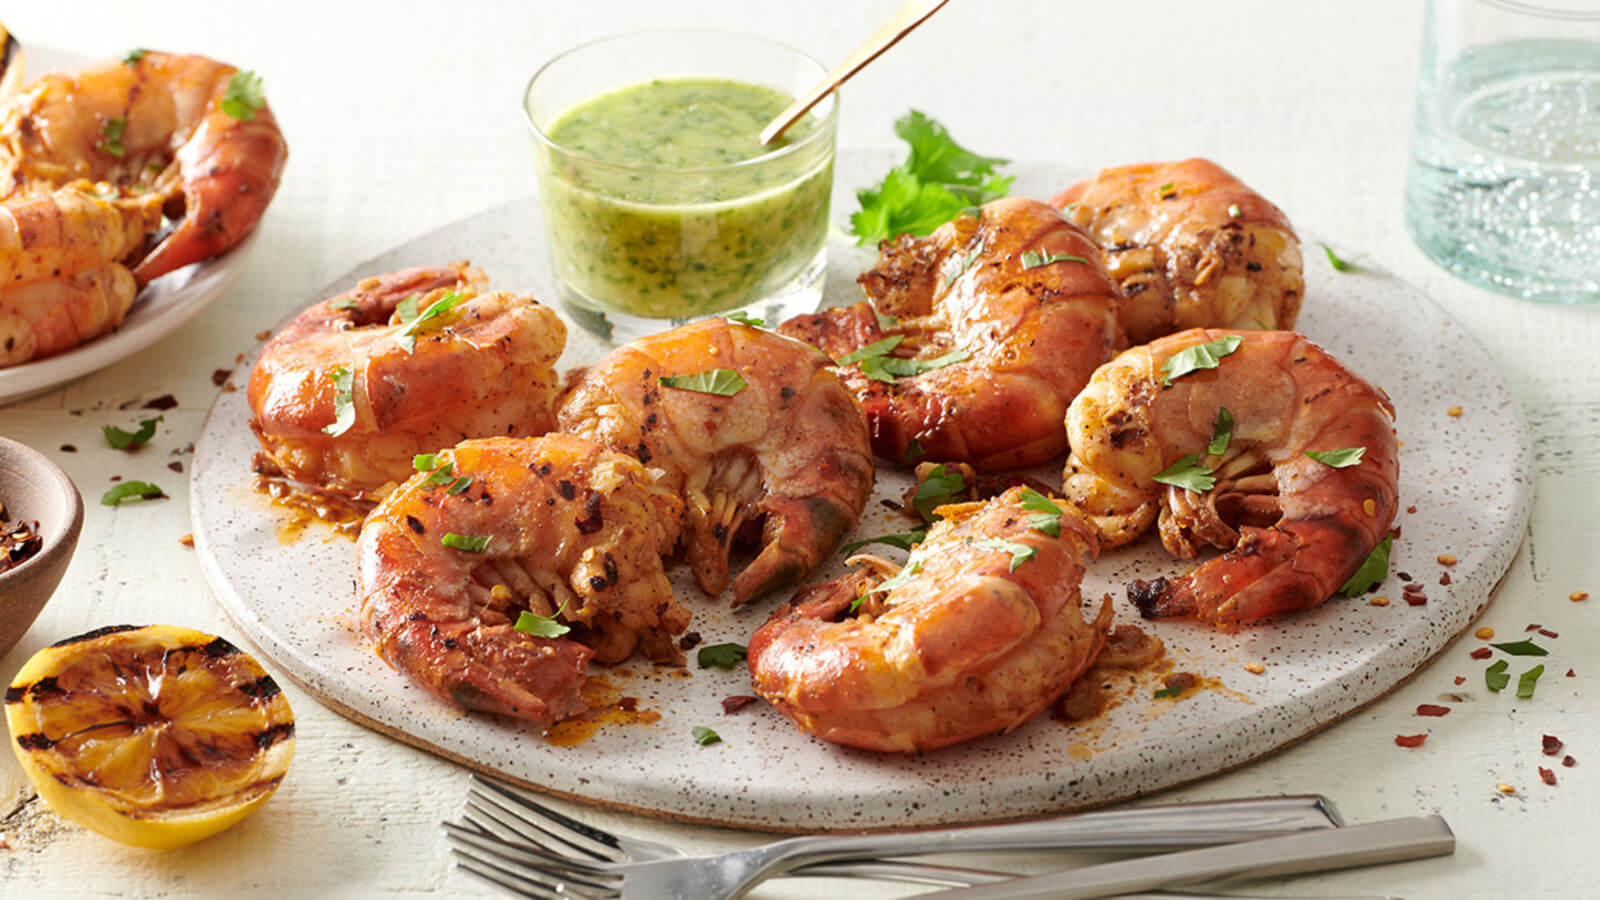 Grilled Colossal Shrimp with Lemon Garlic Herb Butter